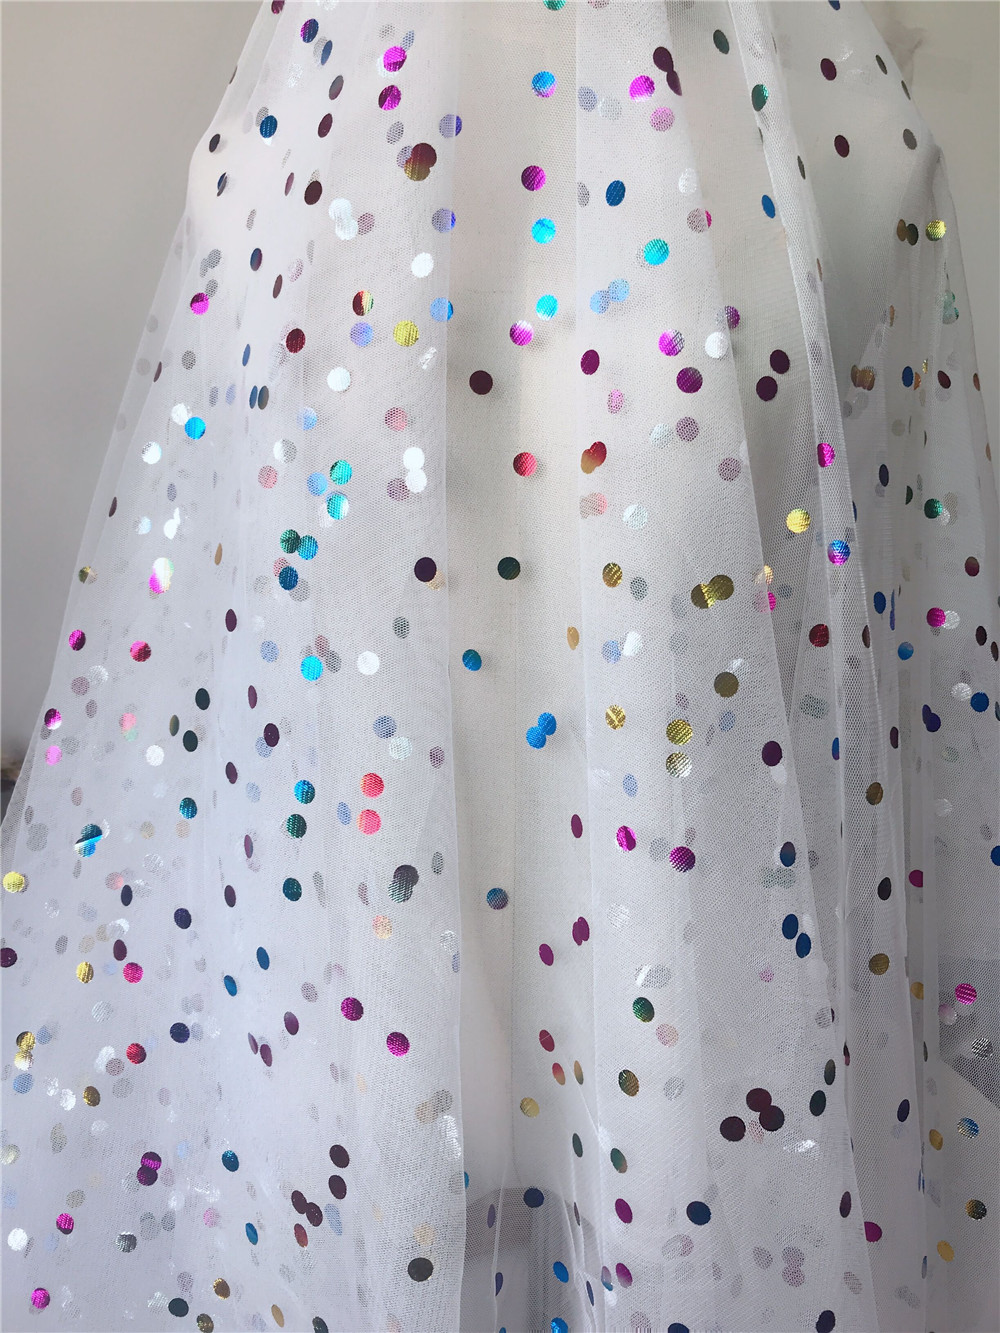 3 Yards Beautiful Colorful Tulle Mesh Lace Fabric Polka Dot Gauze Fabric For Girls Prom Dress Tutu dress Wedding Party Decor in Fabric from Home Garden